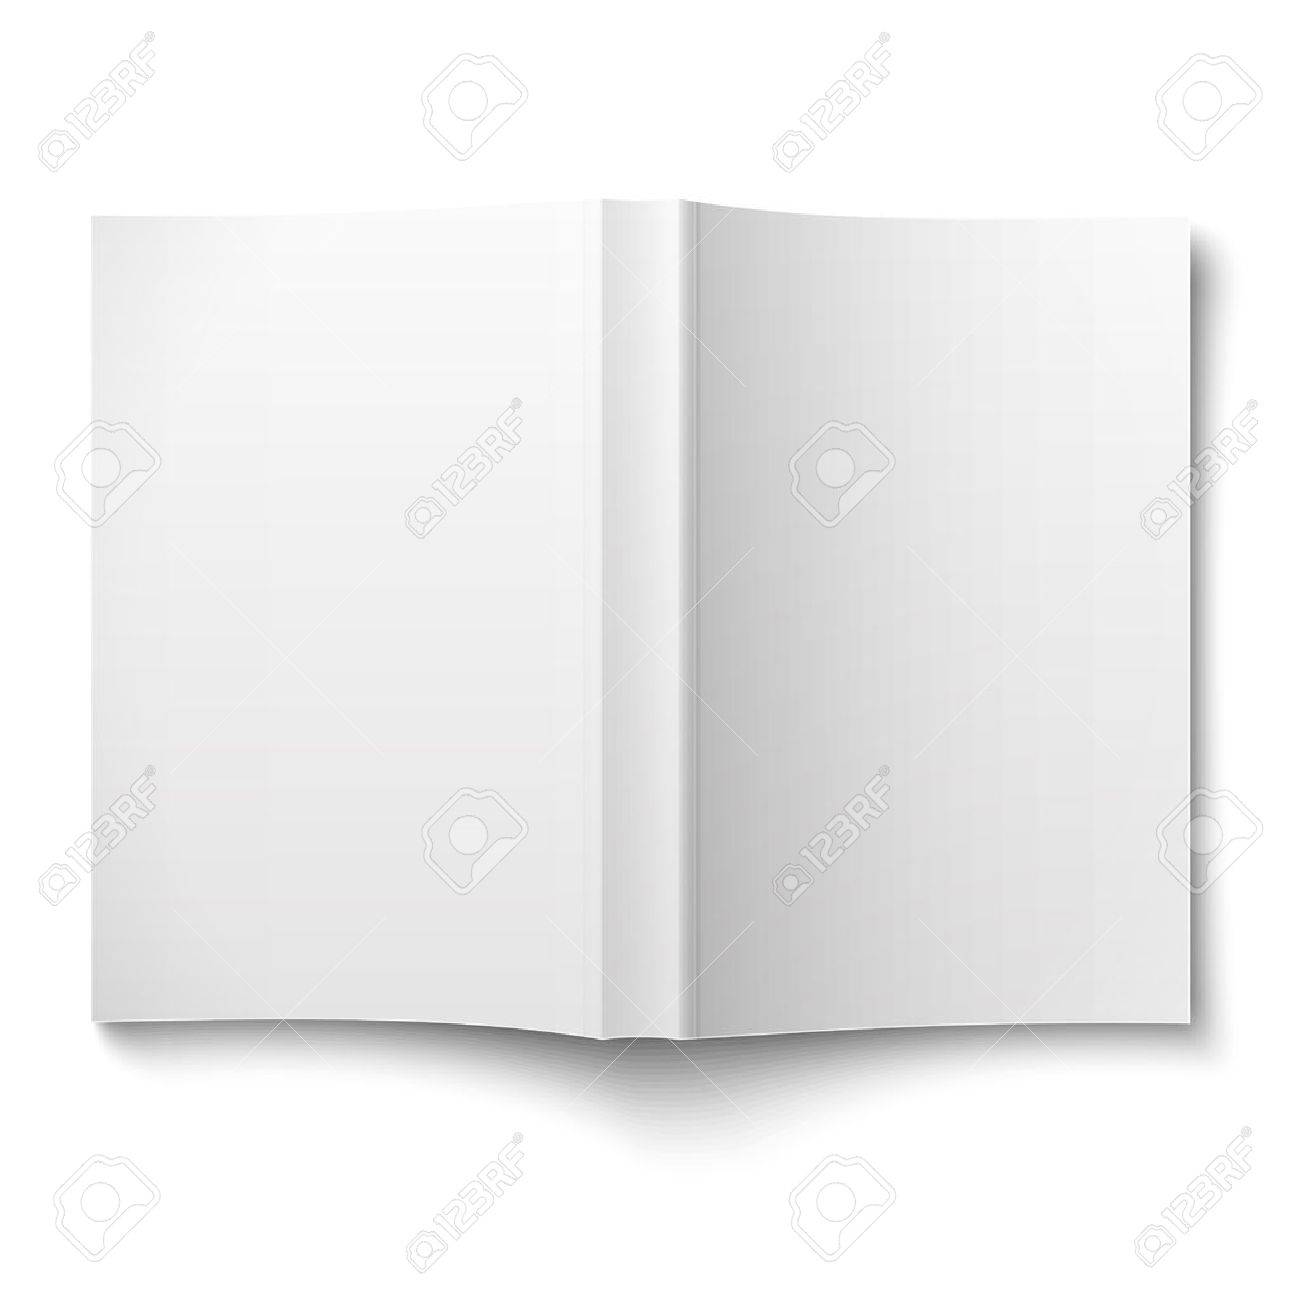 blank softcover book template spread out on white royalty free